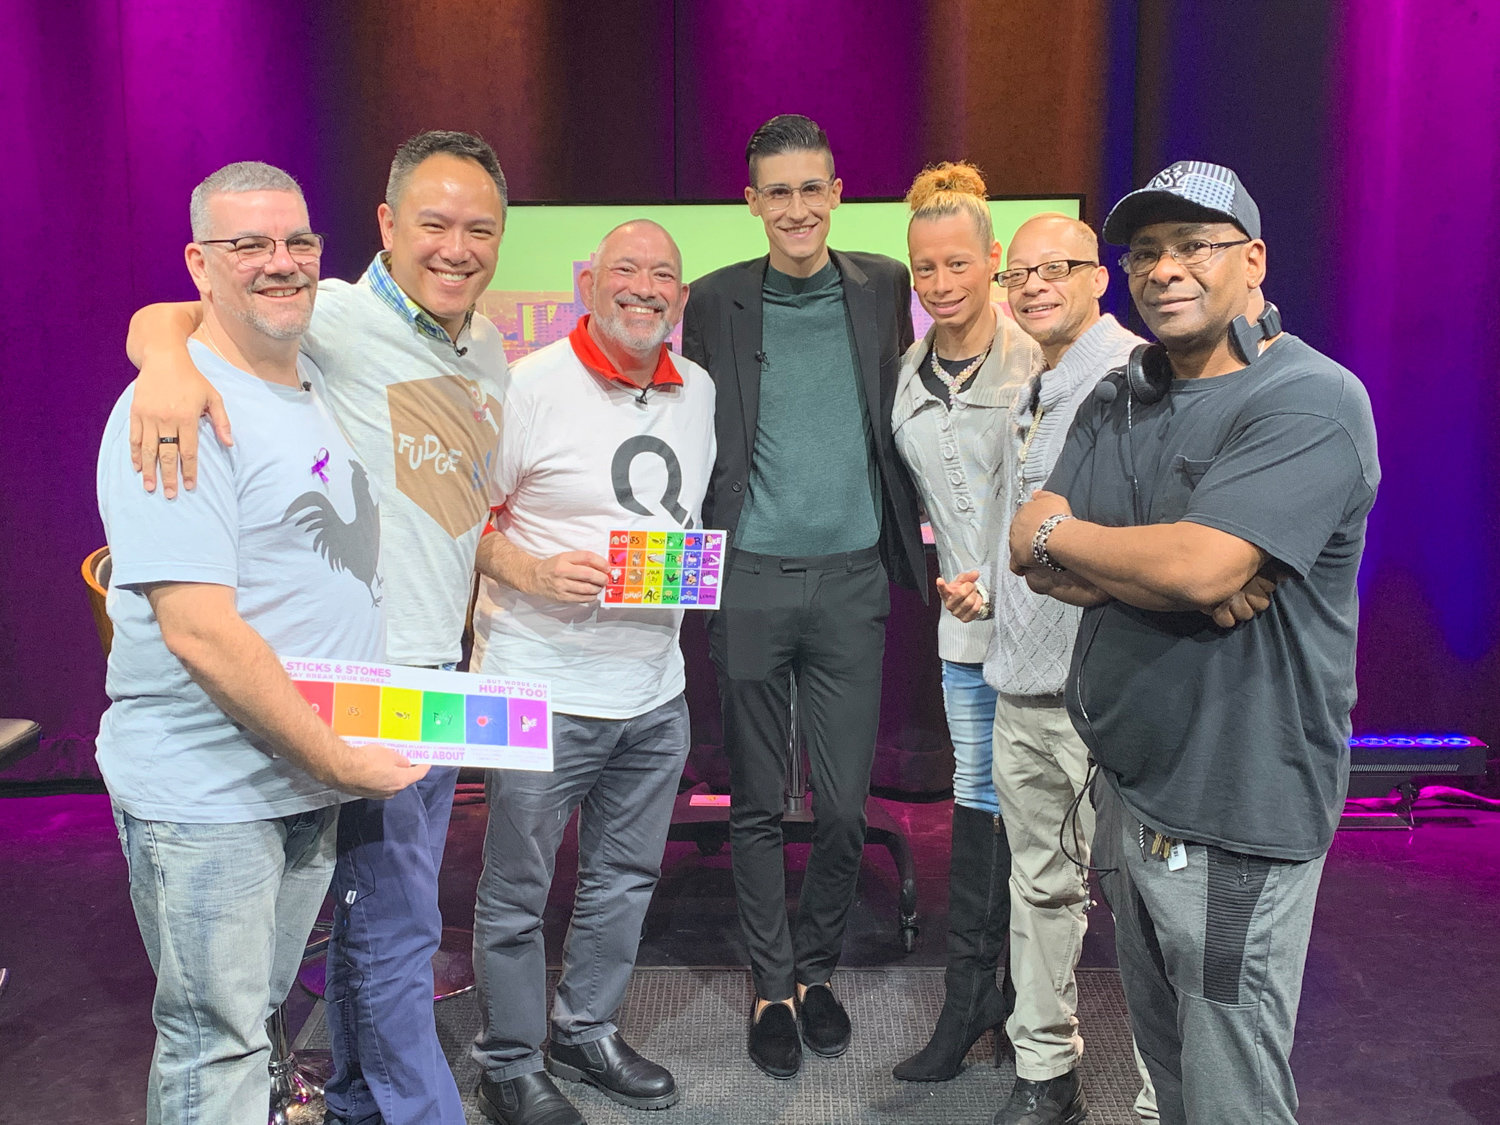 James Young, Geoff Peckman and Jeff Gurkin-Young of Queery, an LGBTQ education group, stands across from Sabastian Roy and Lailani Muniz of the New York Transgender Bodybuilding Federation with 'Out Loud' television host Anthony Parker right in the middle.